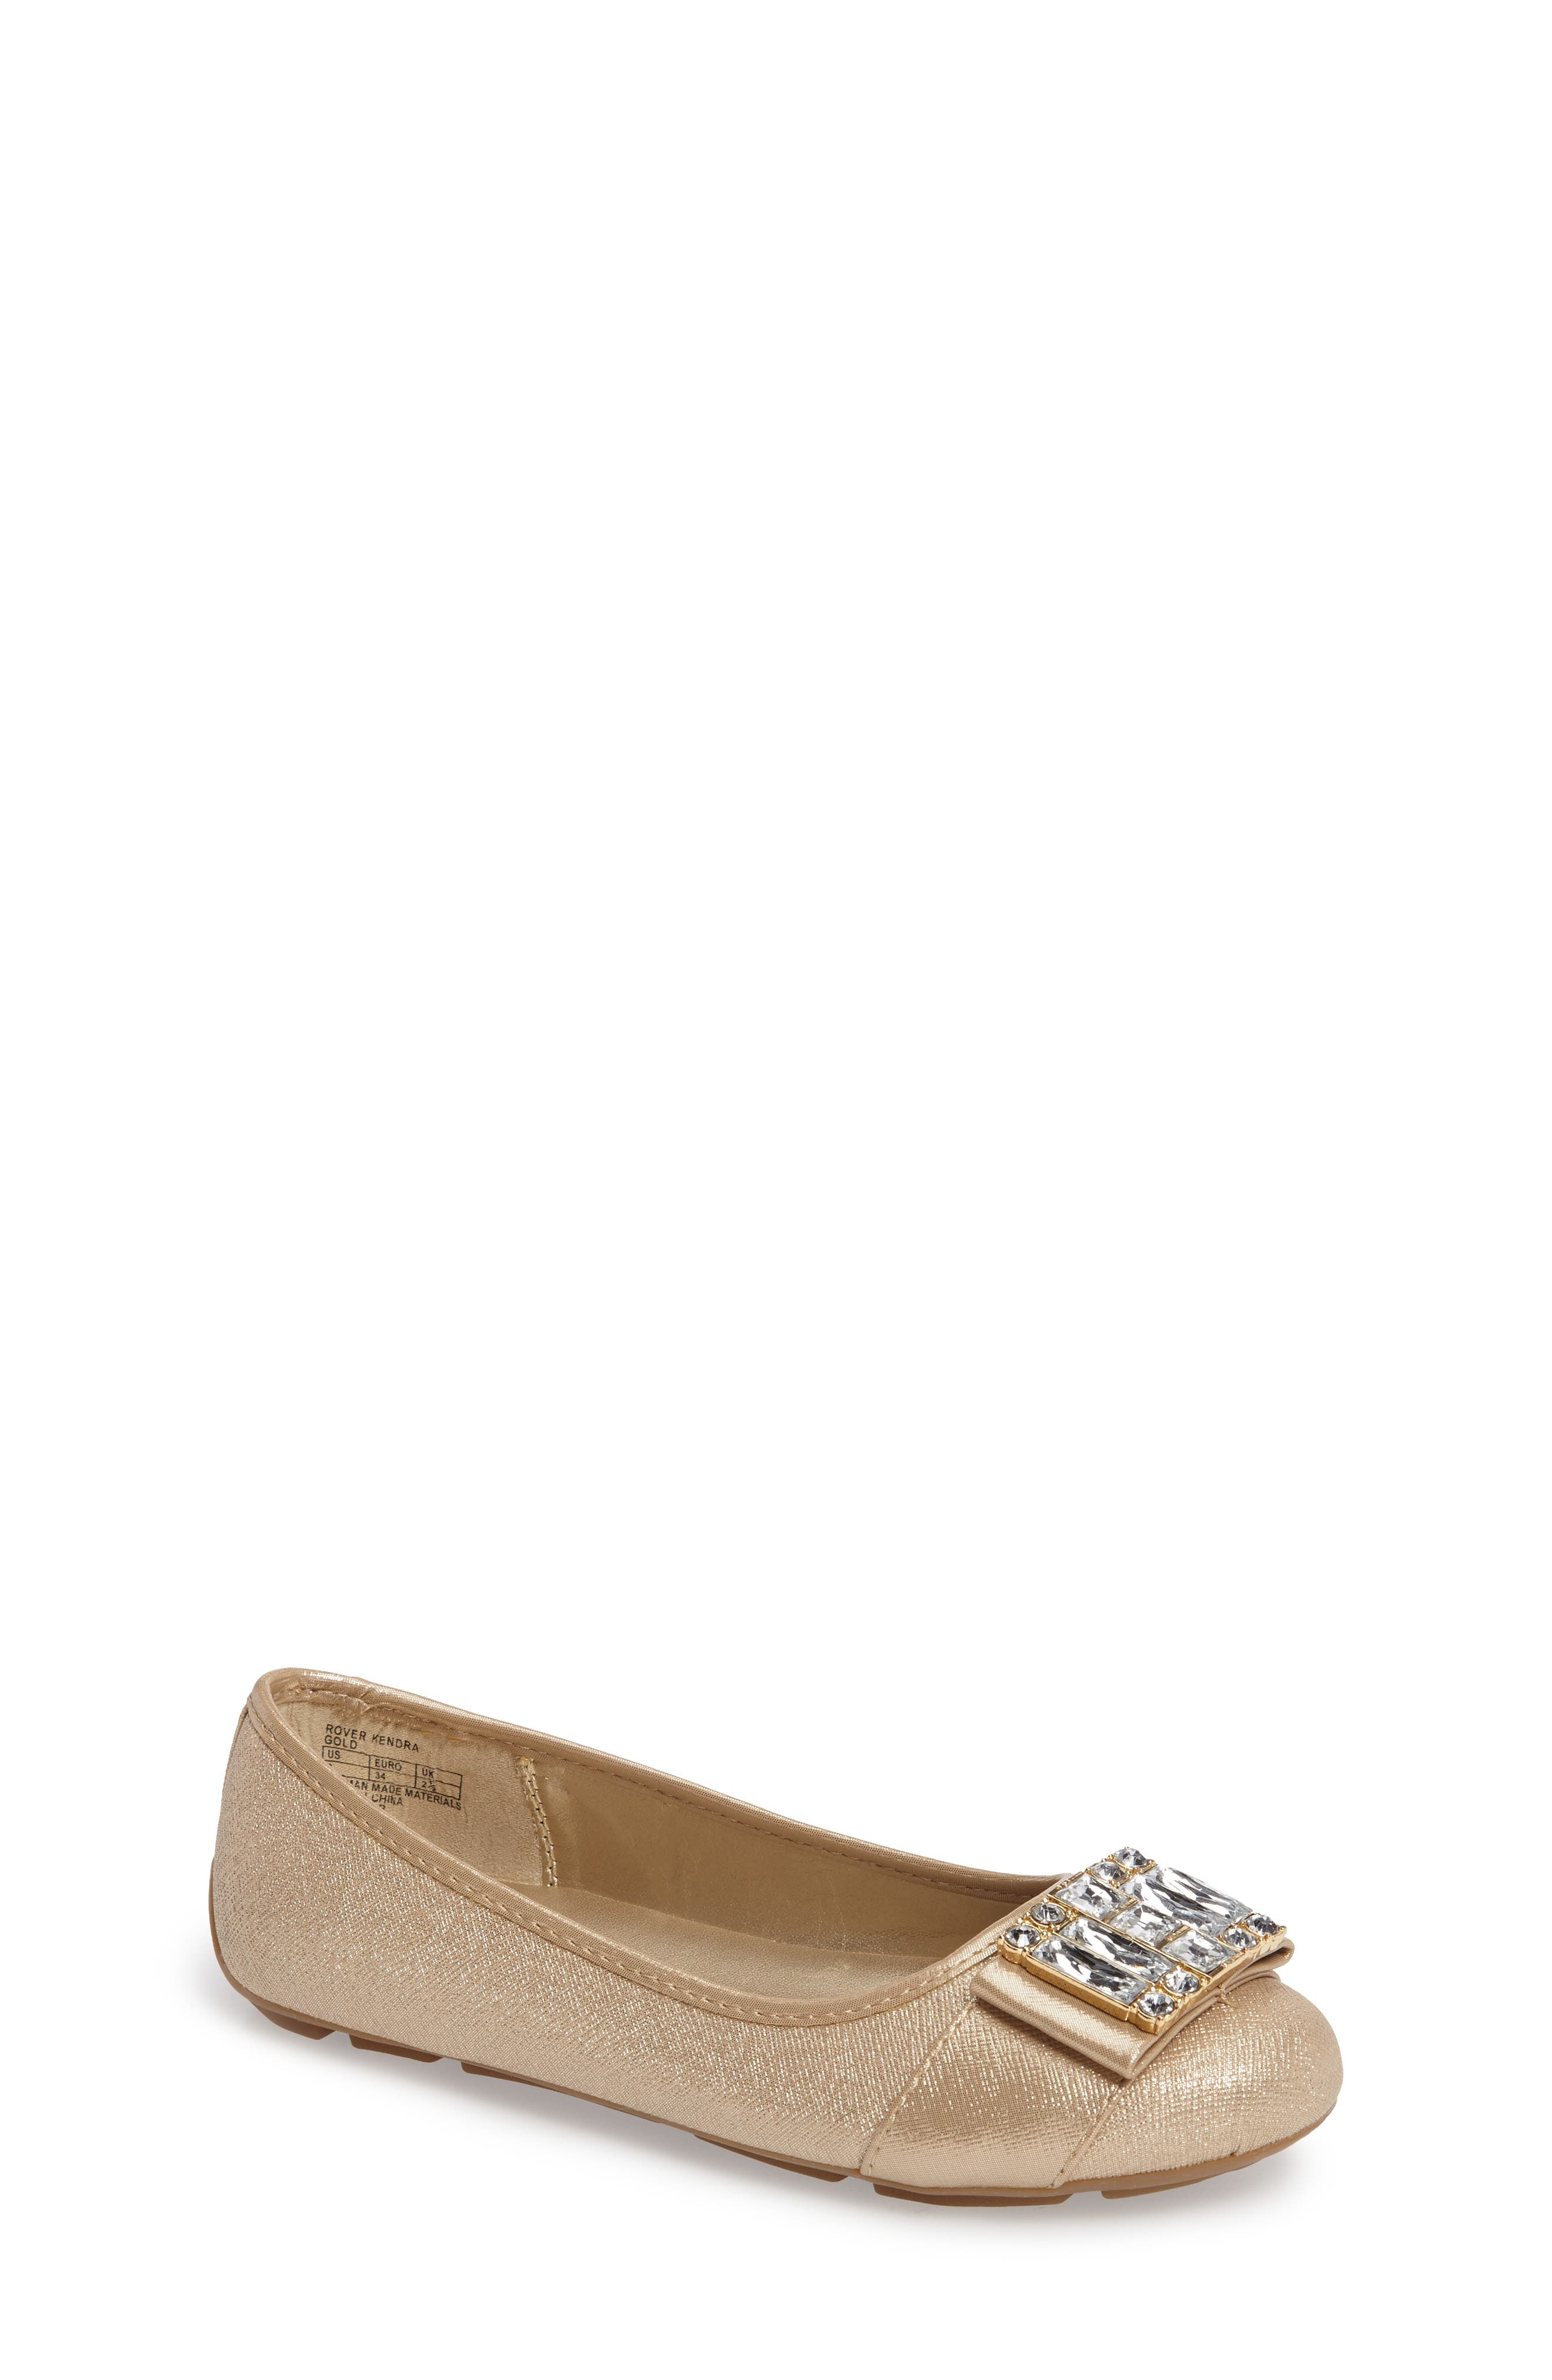 Rover Kendra Ballet Flat,                         Main,                         color, Gold